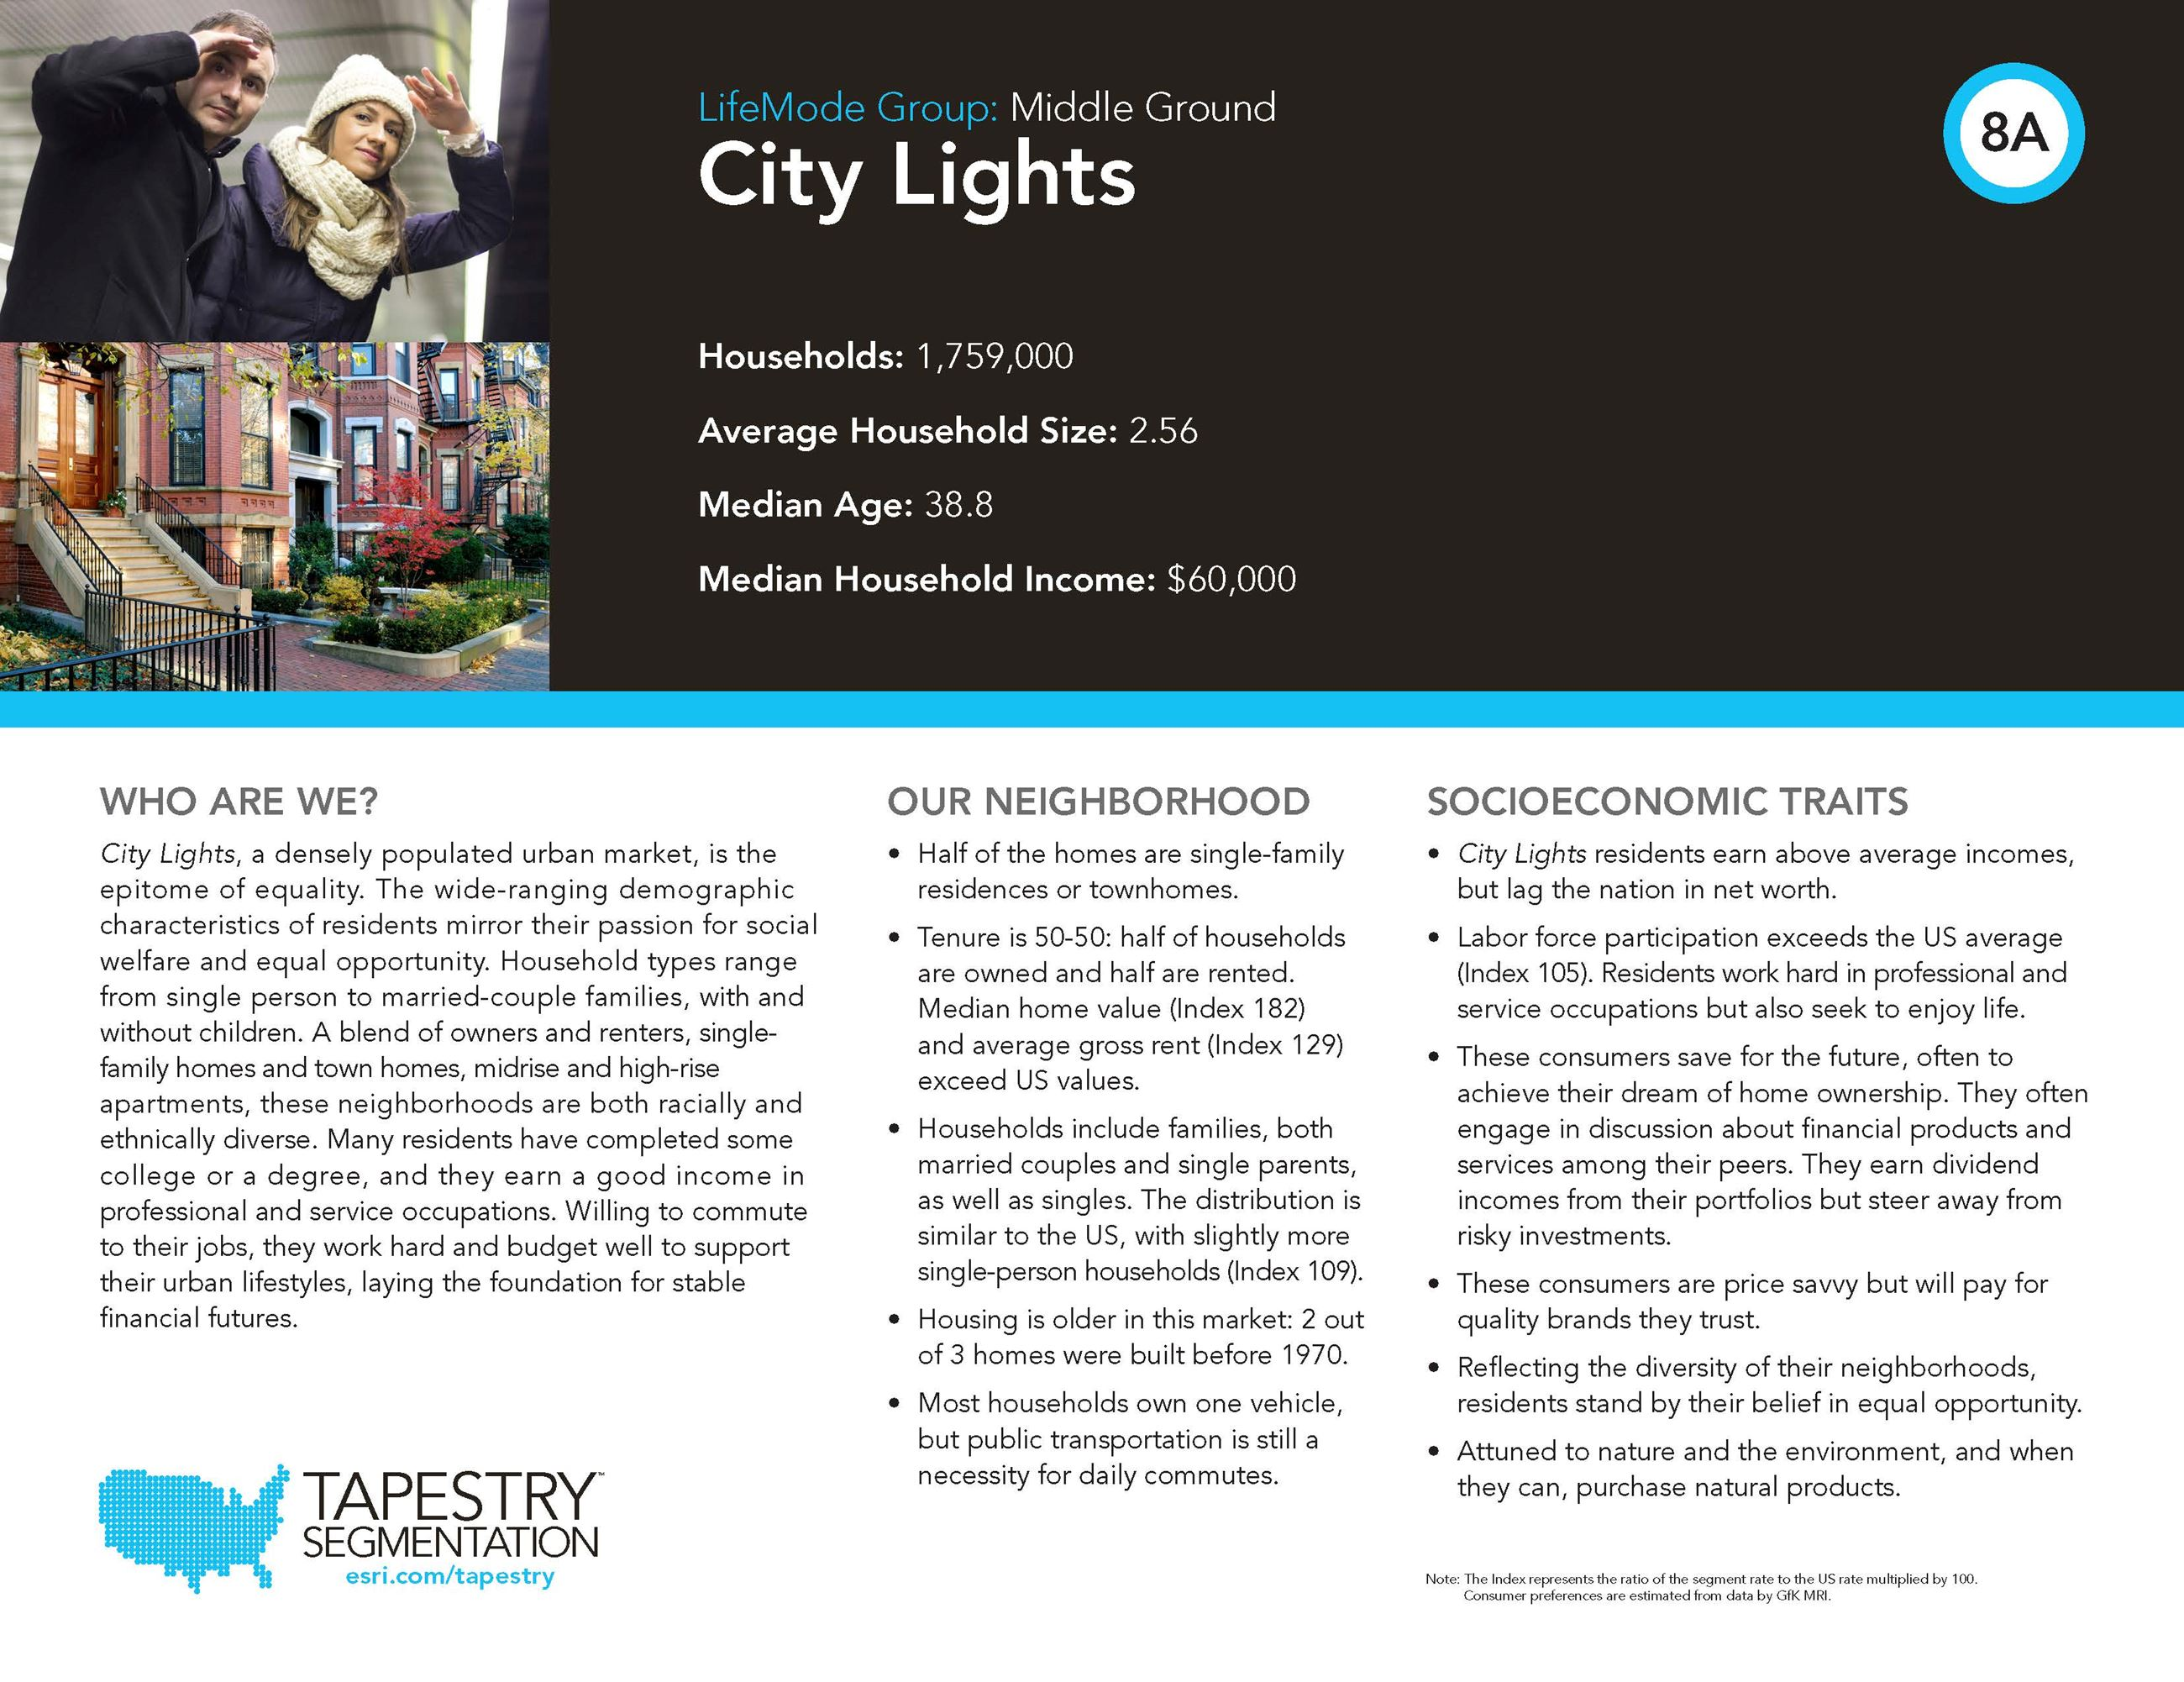 City Lights Demographic Description